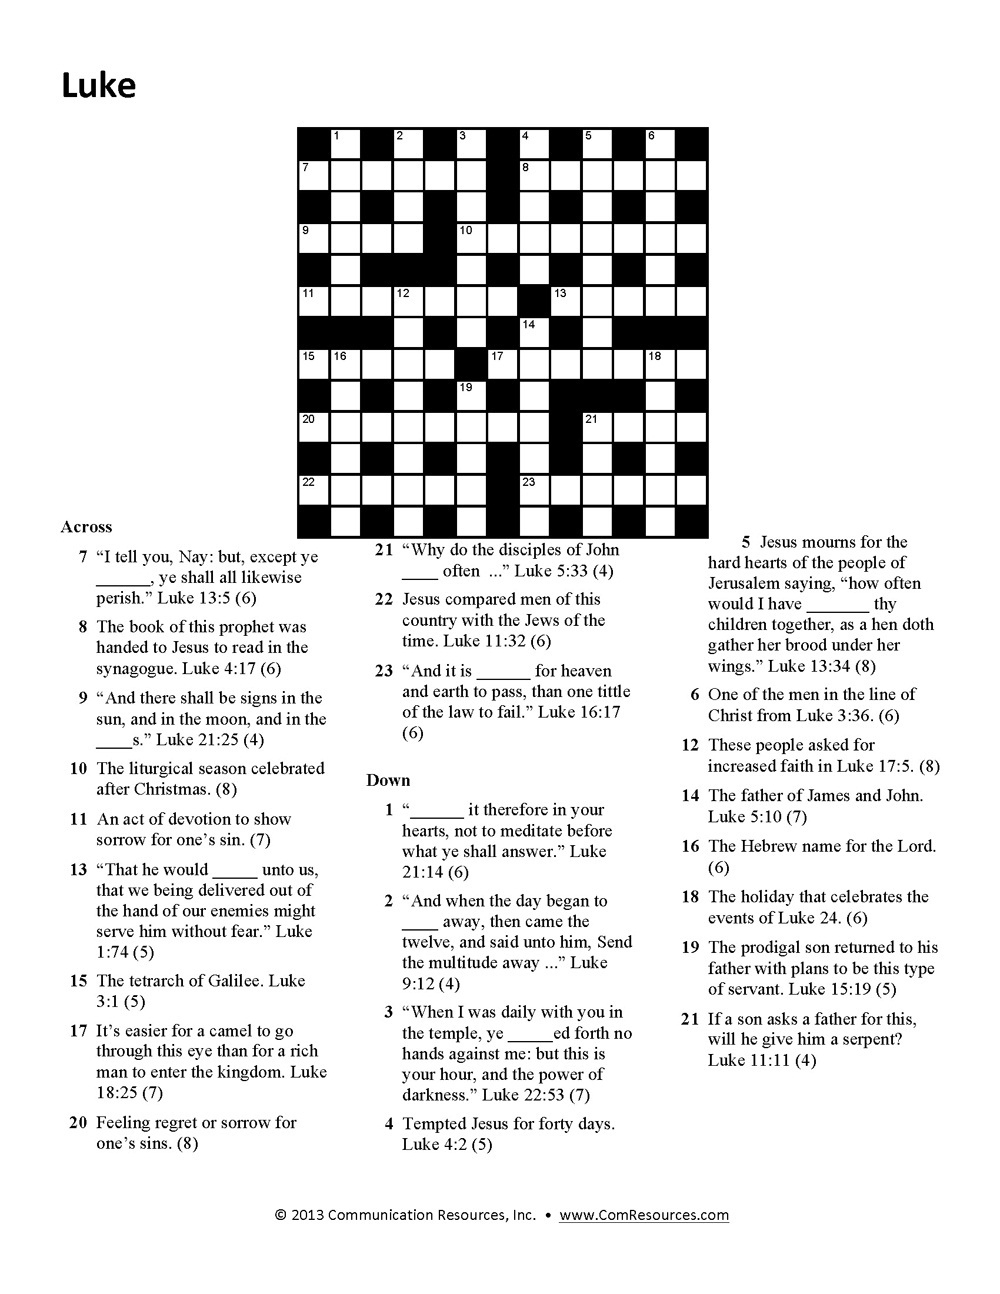 15 Fun Bible Crossword Puzzles | Kittybabylove - Printable Bible Crossword Puzzles For Adults